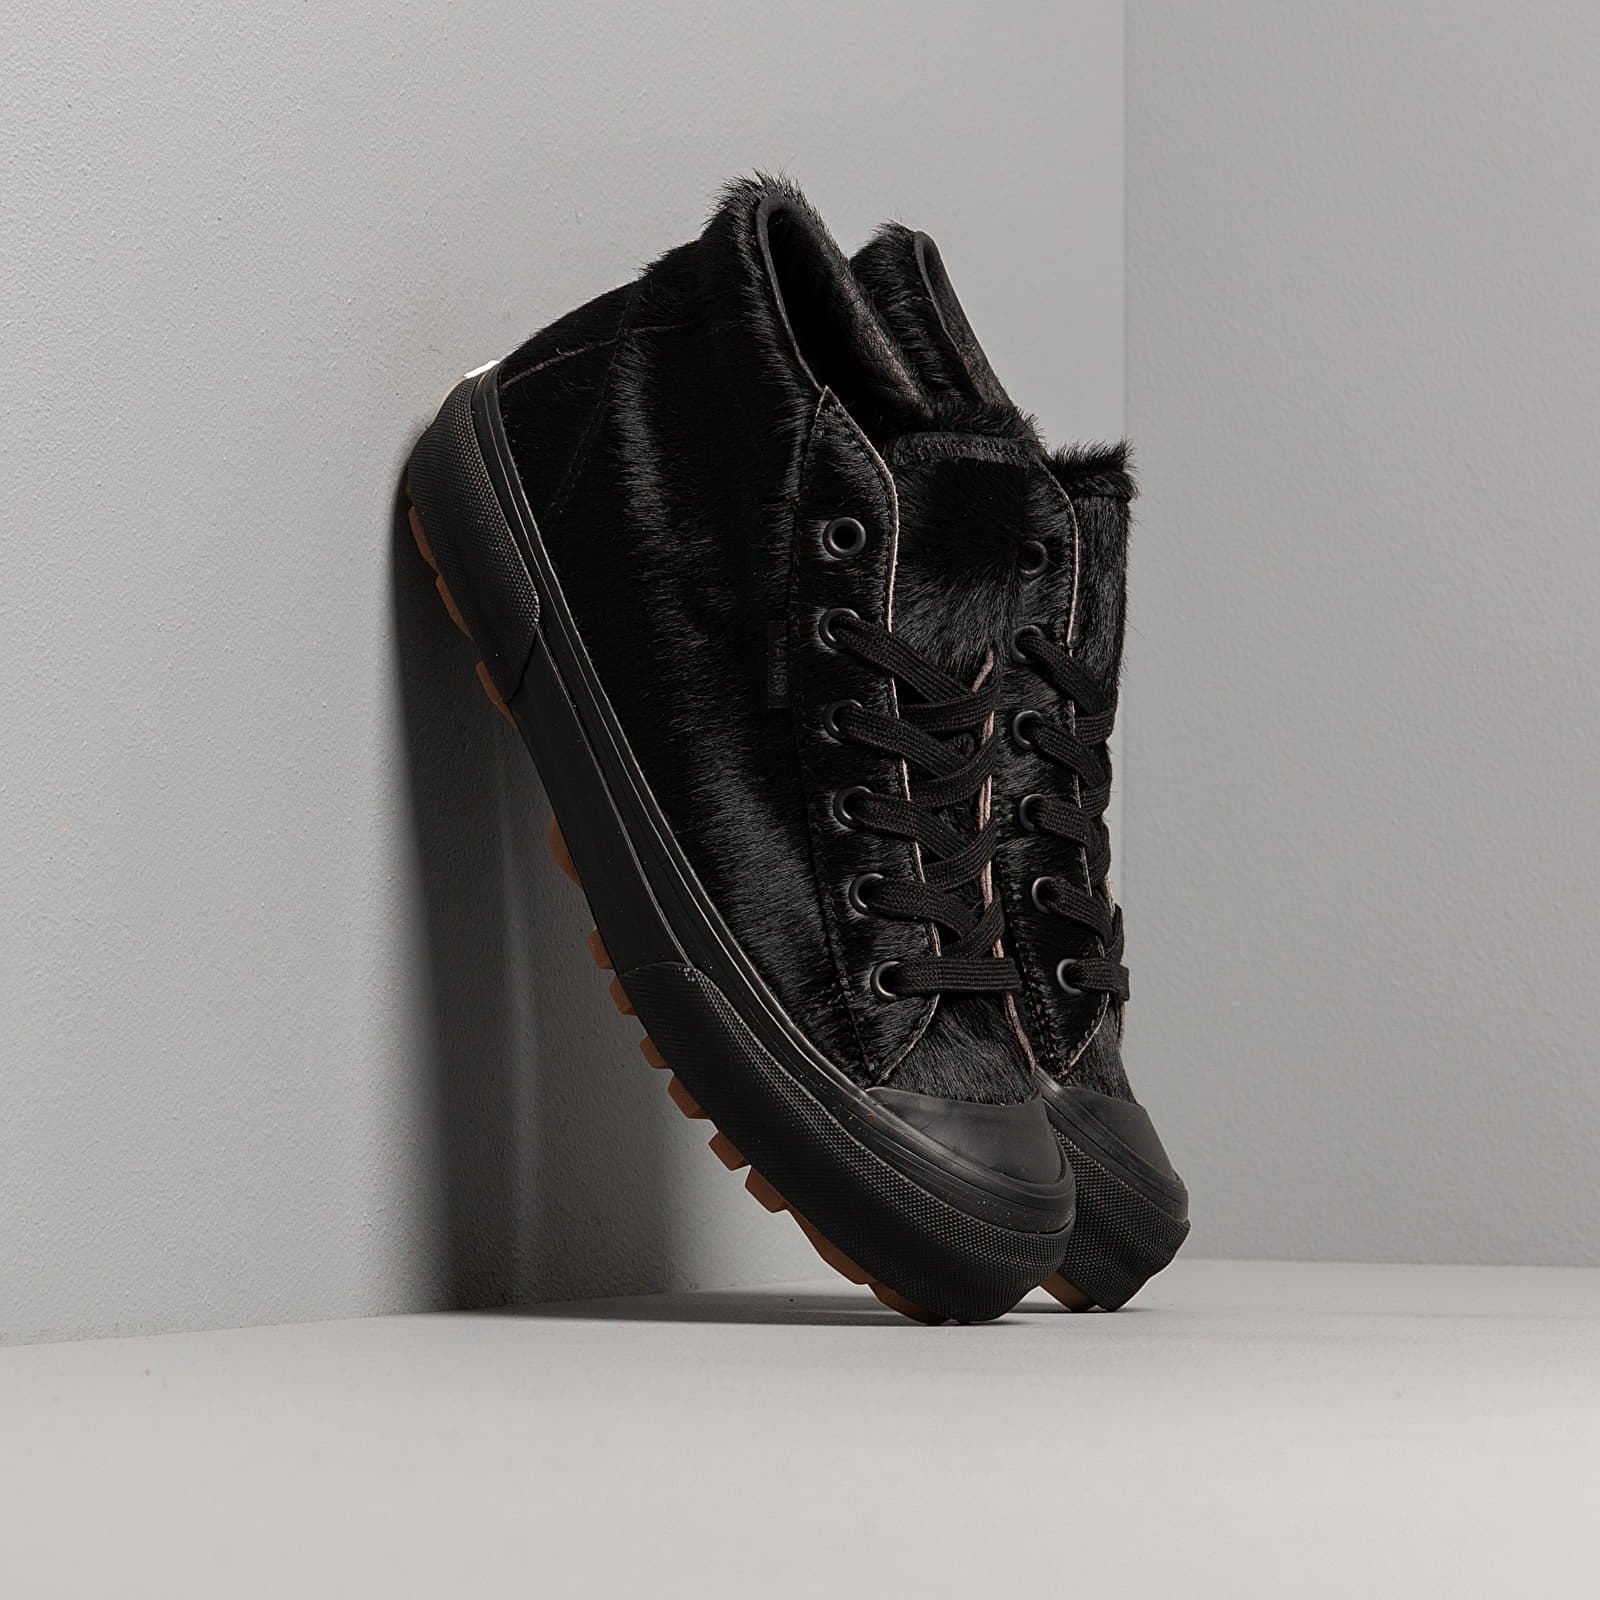 Мужская обувь Vans OG G.I LX (Pony Hair) Black